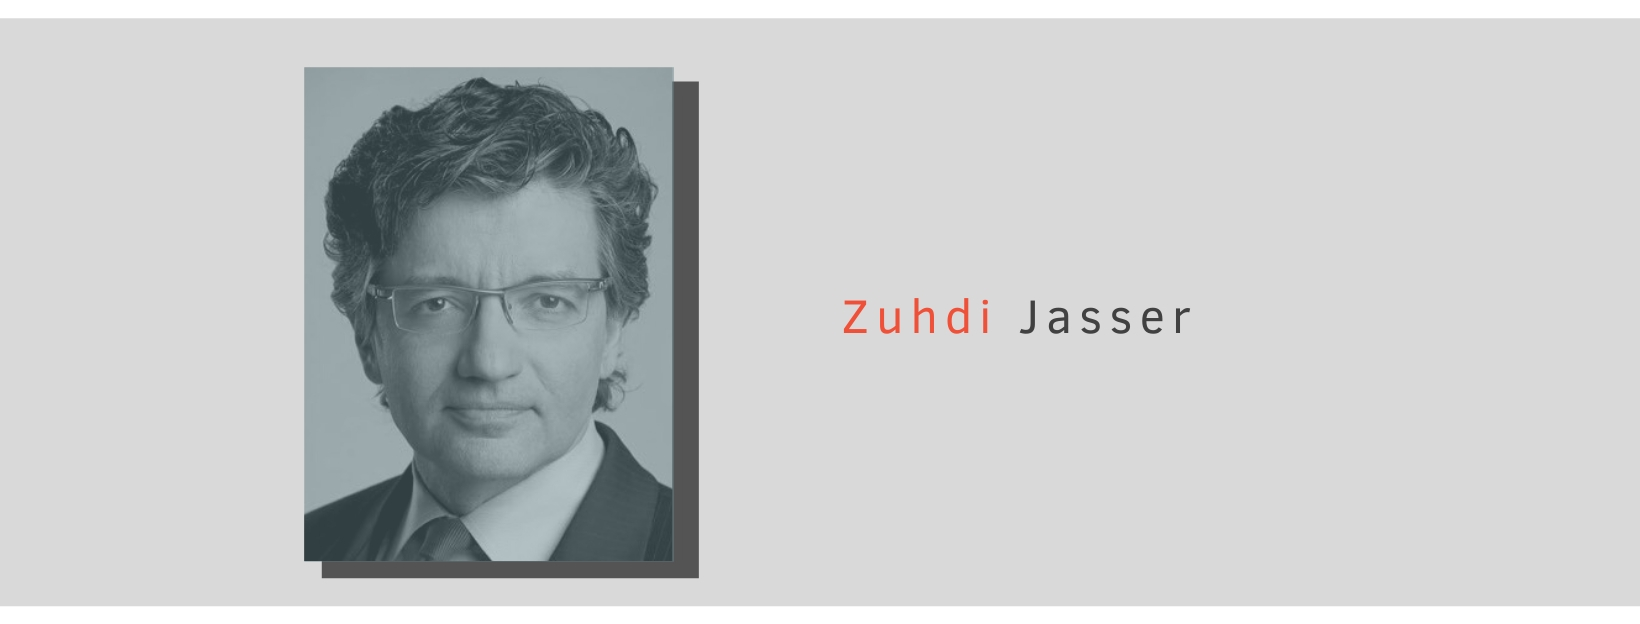 Graphic shows Zuhdi Jasser, co founder of the Muslim Reform Movement